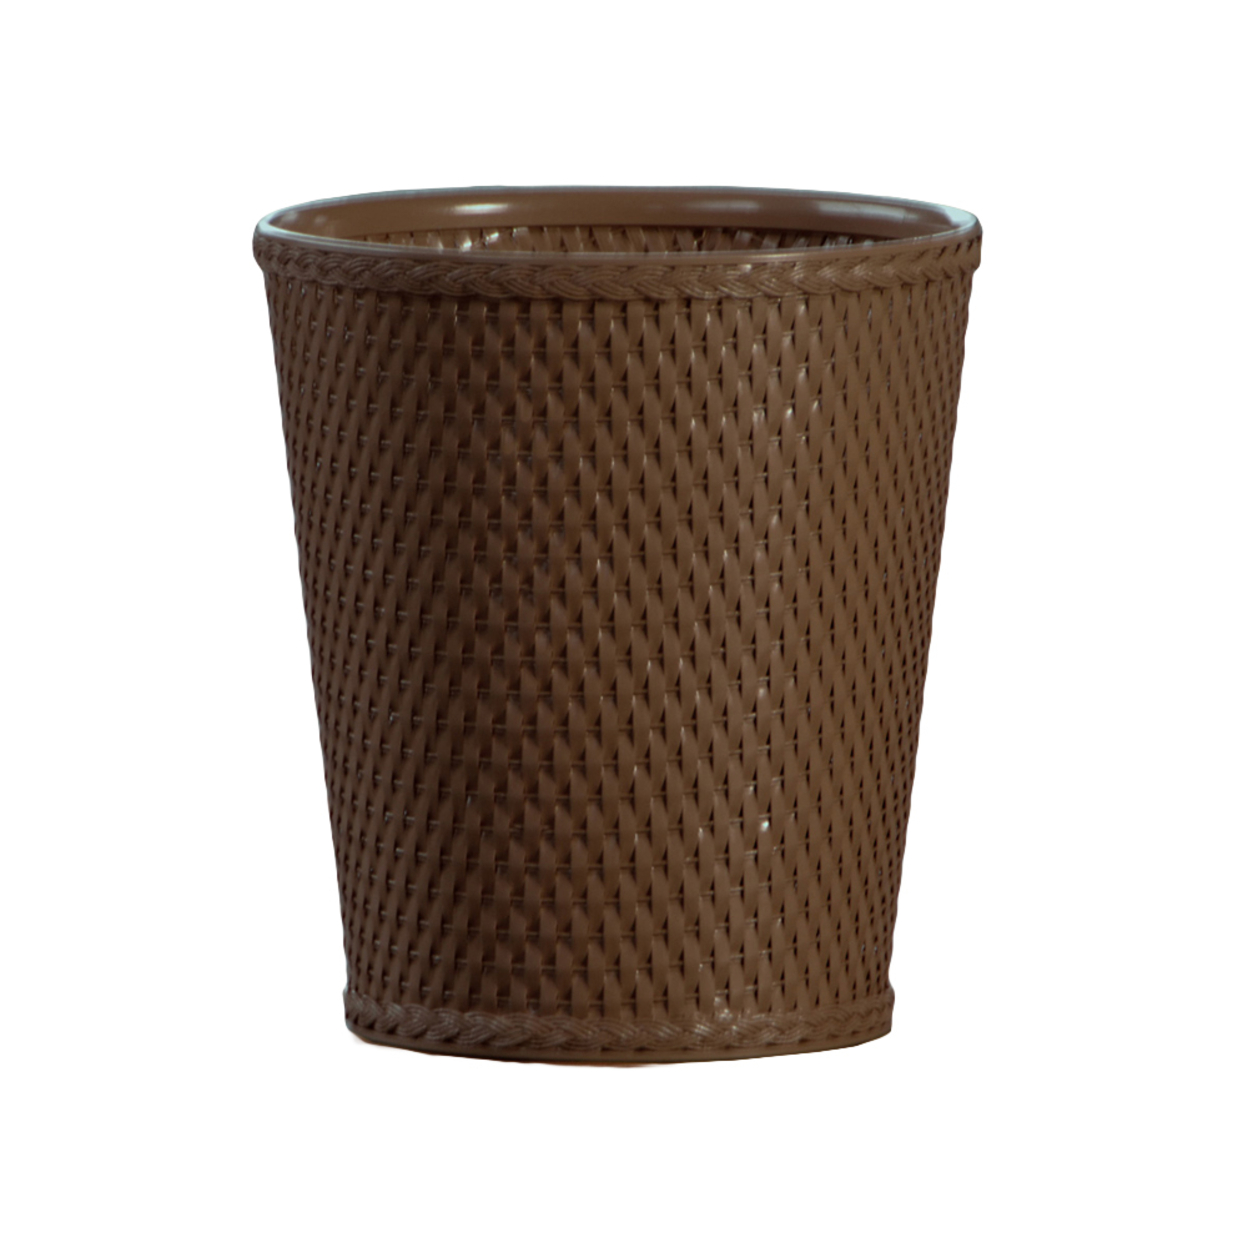 Lamont Home Trash Container Carter Round Wastebasket